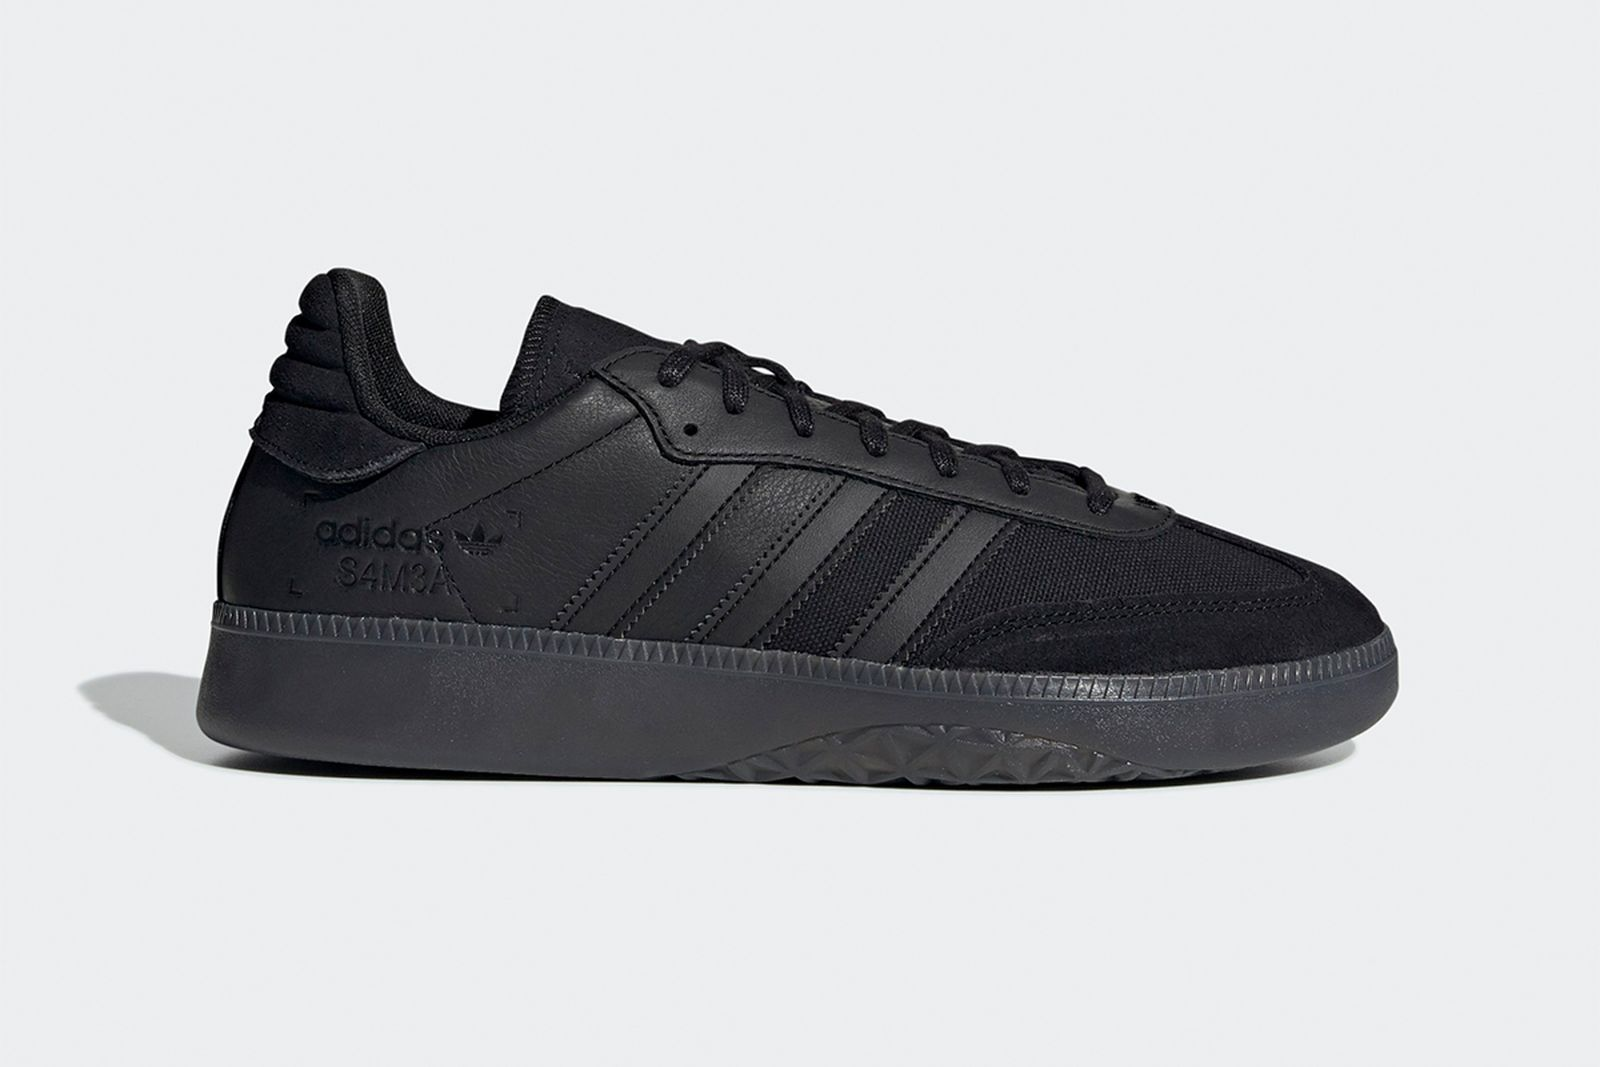 adidas samba rm cloud white core black release date price